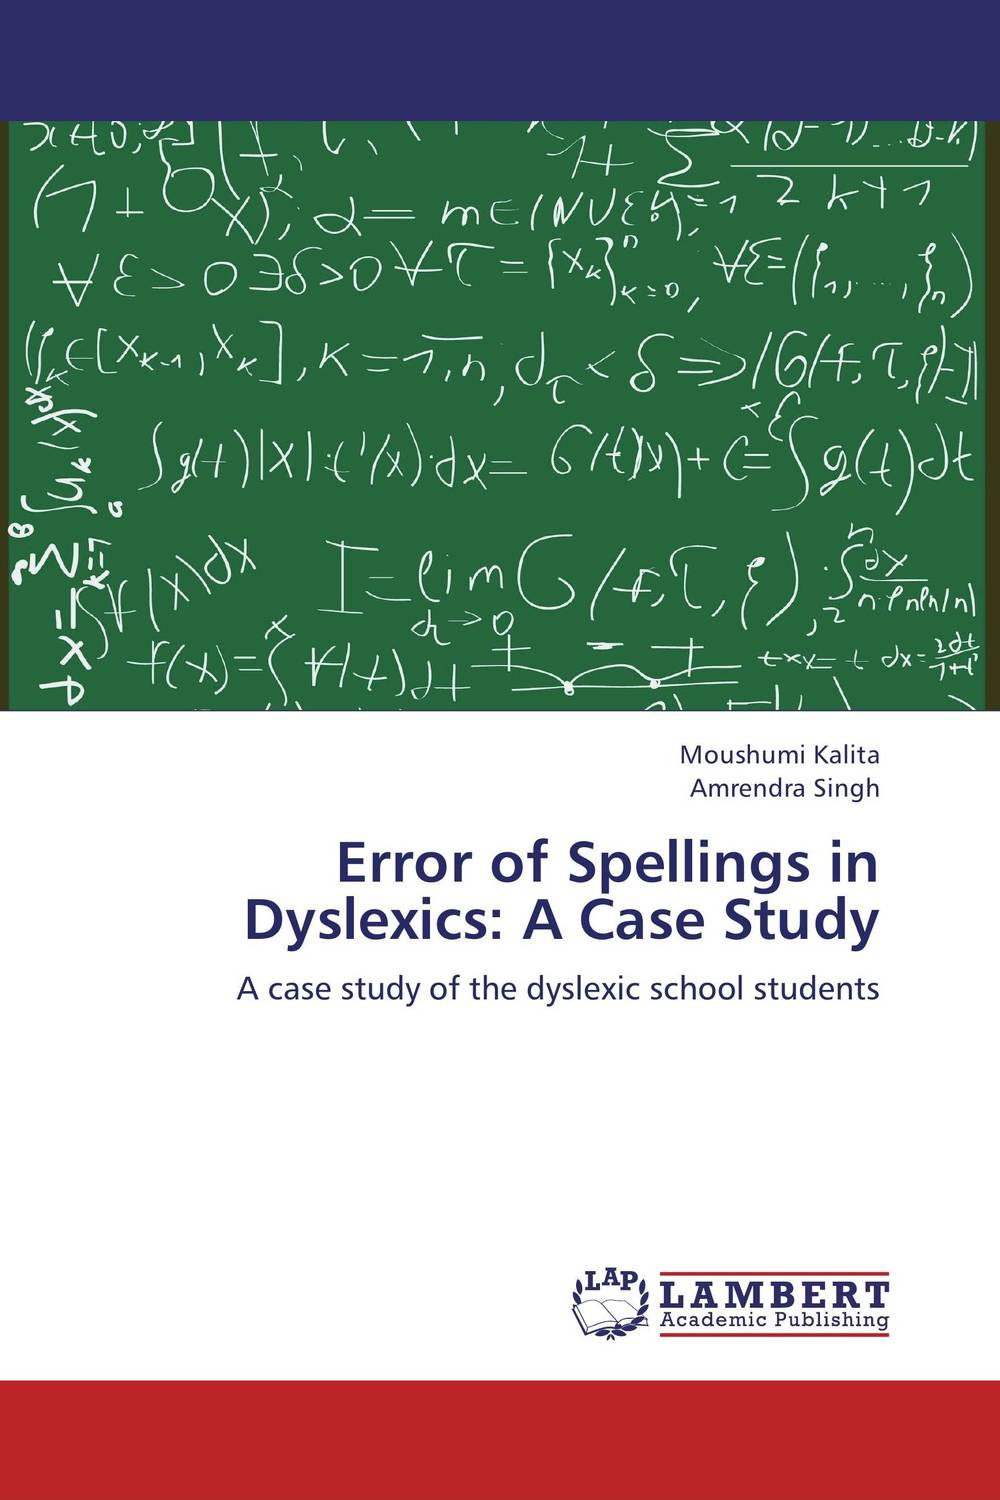 Error of Spellings in Dyslexics: A Case Study